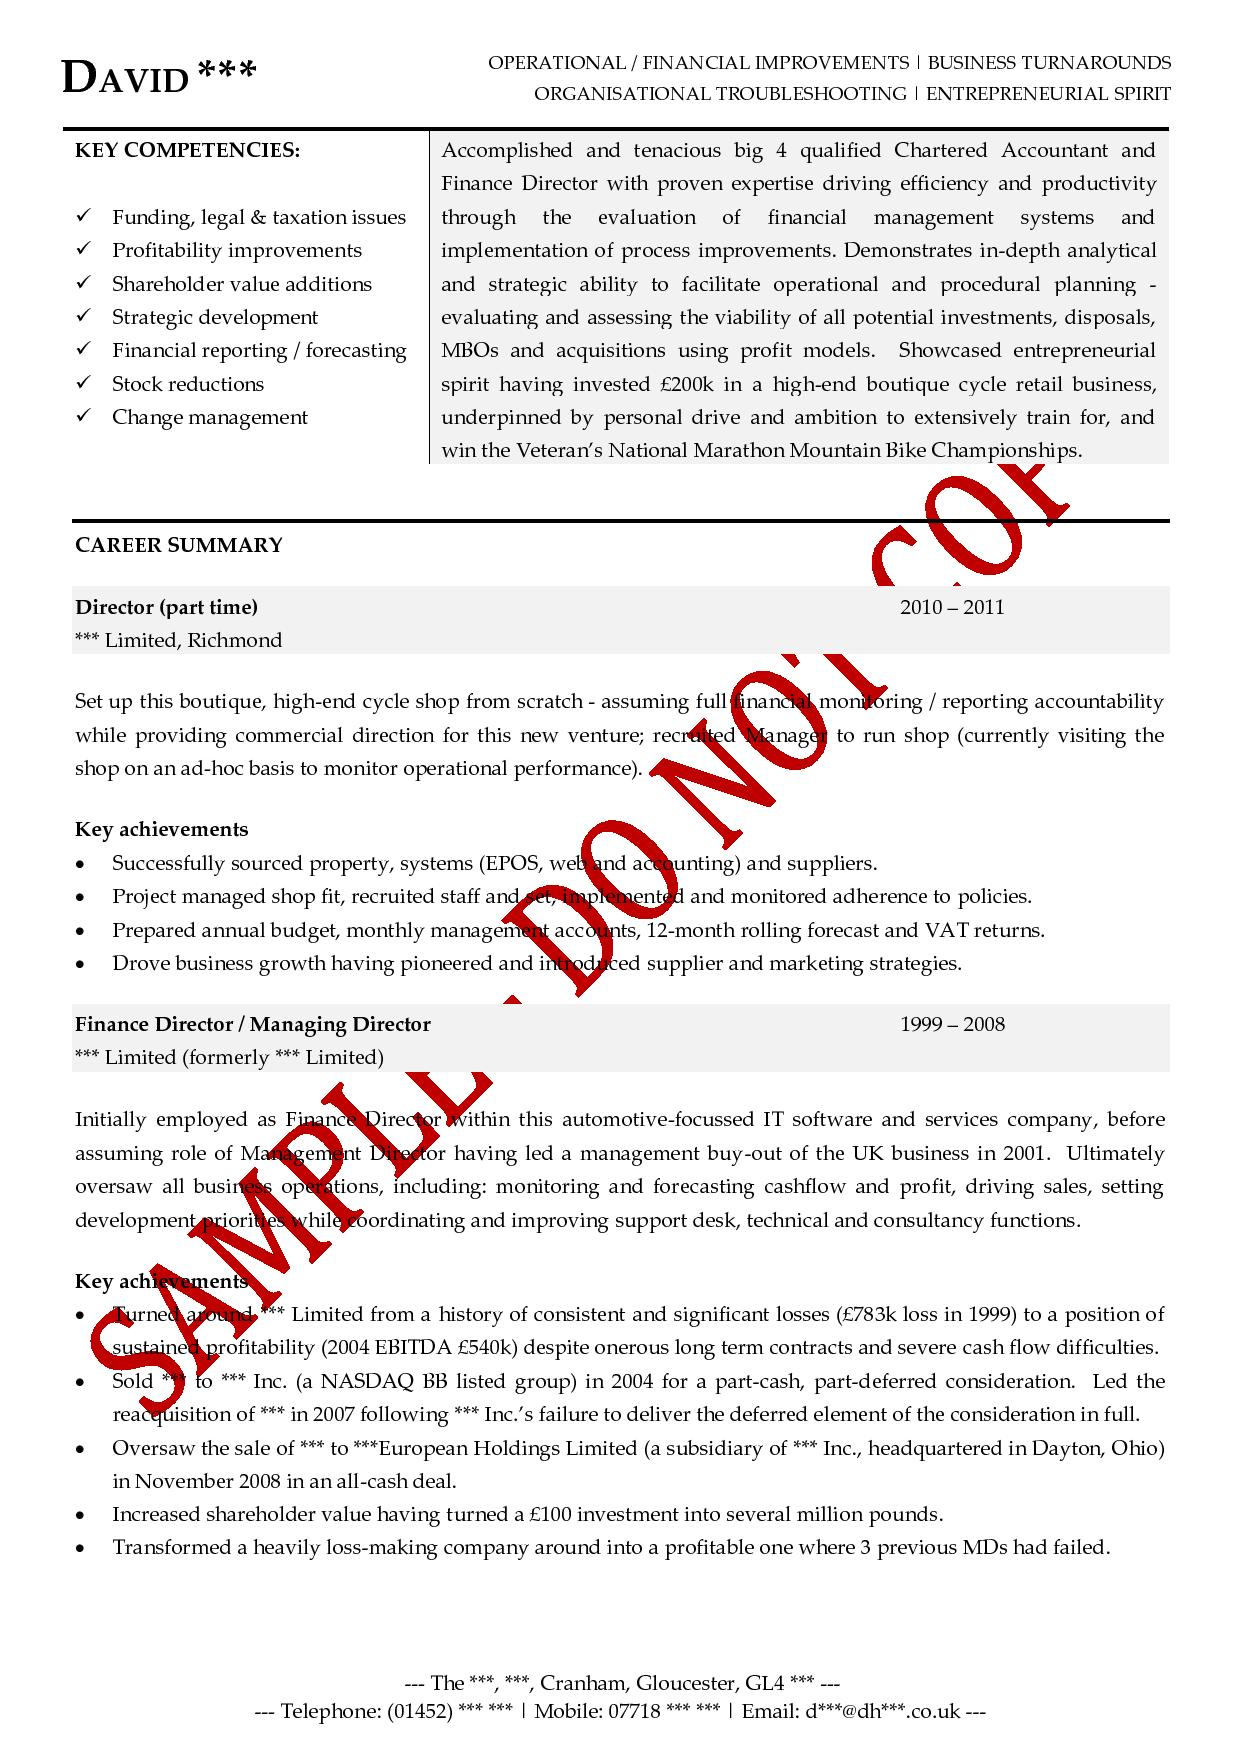 cv templates for students nz professional resume cover letter sample cv templates for students nz cv templates cv template rustico teaching executive cv examples the cv